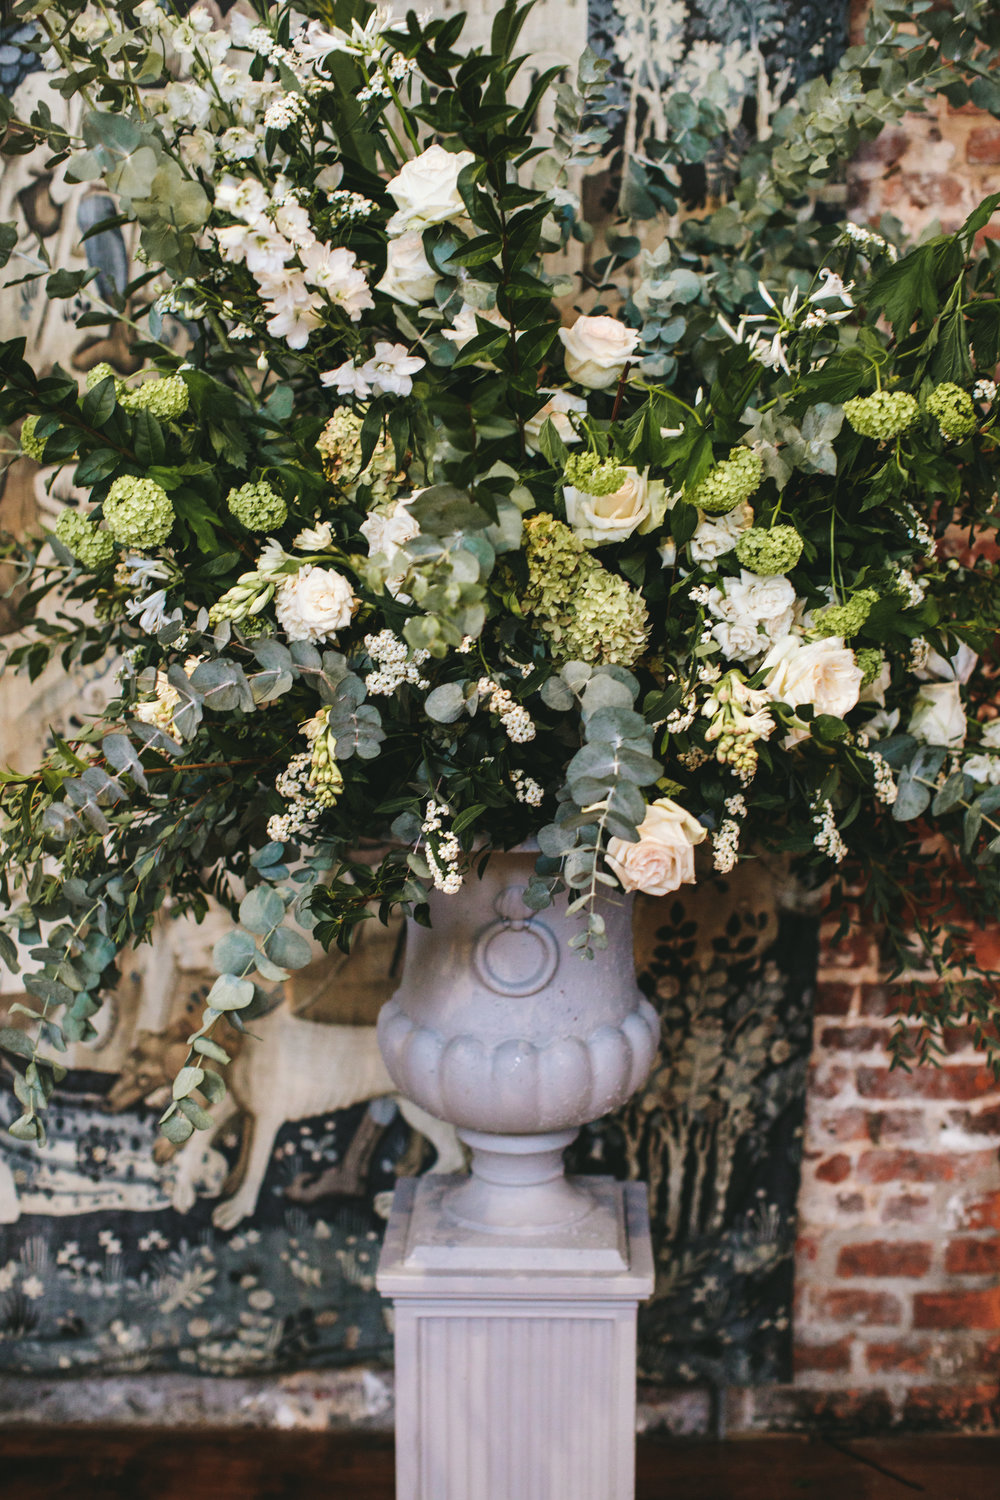 Large elegant green and white flower urn for Hatfield House wedding by The Flower Story